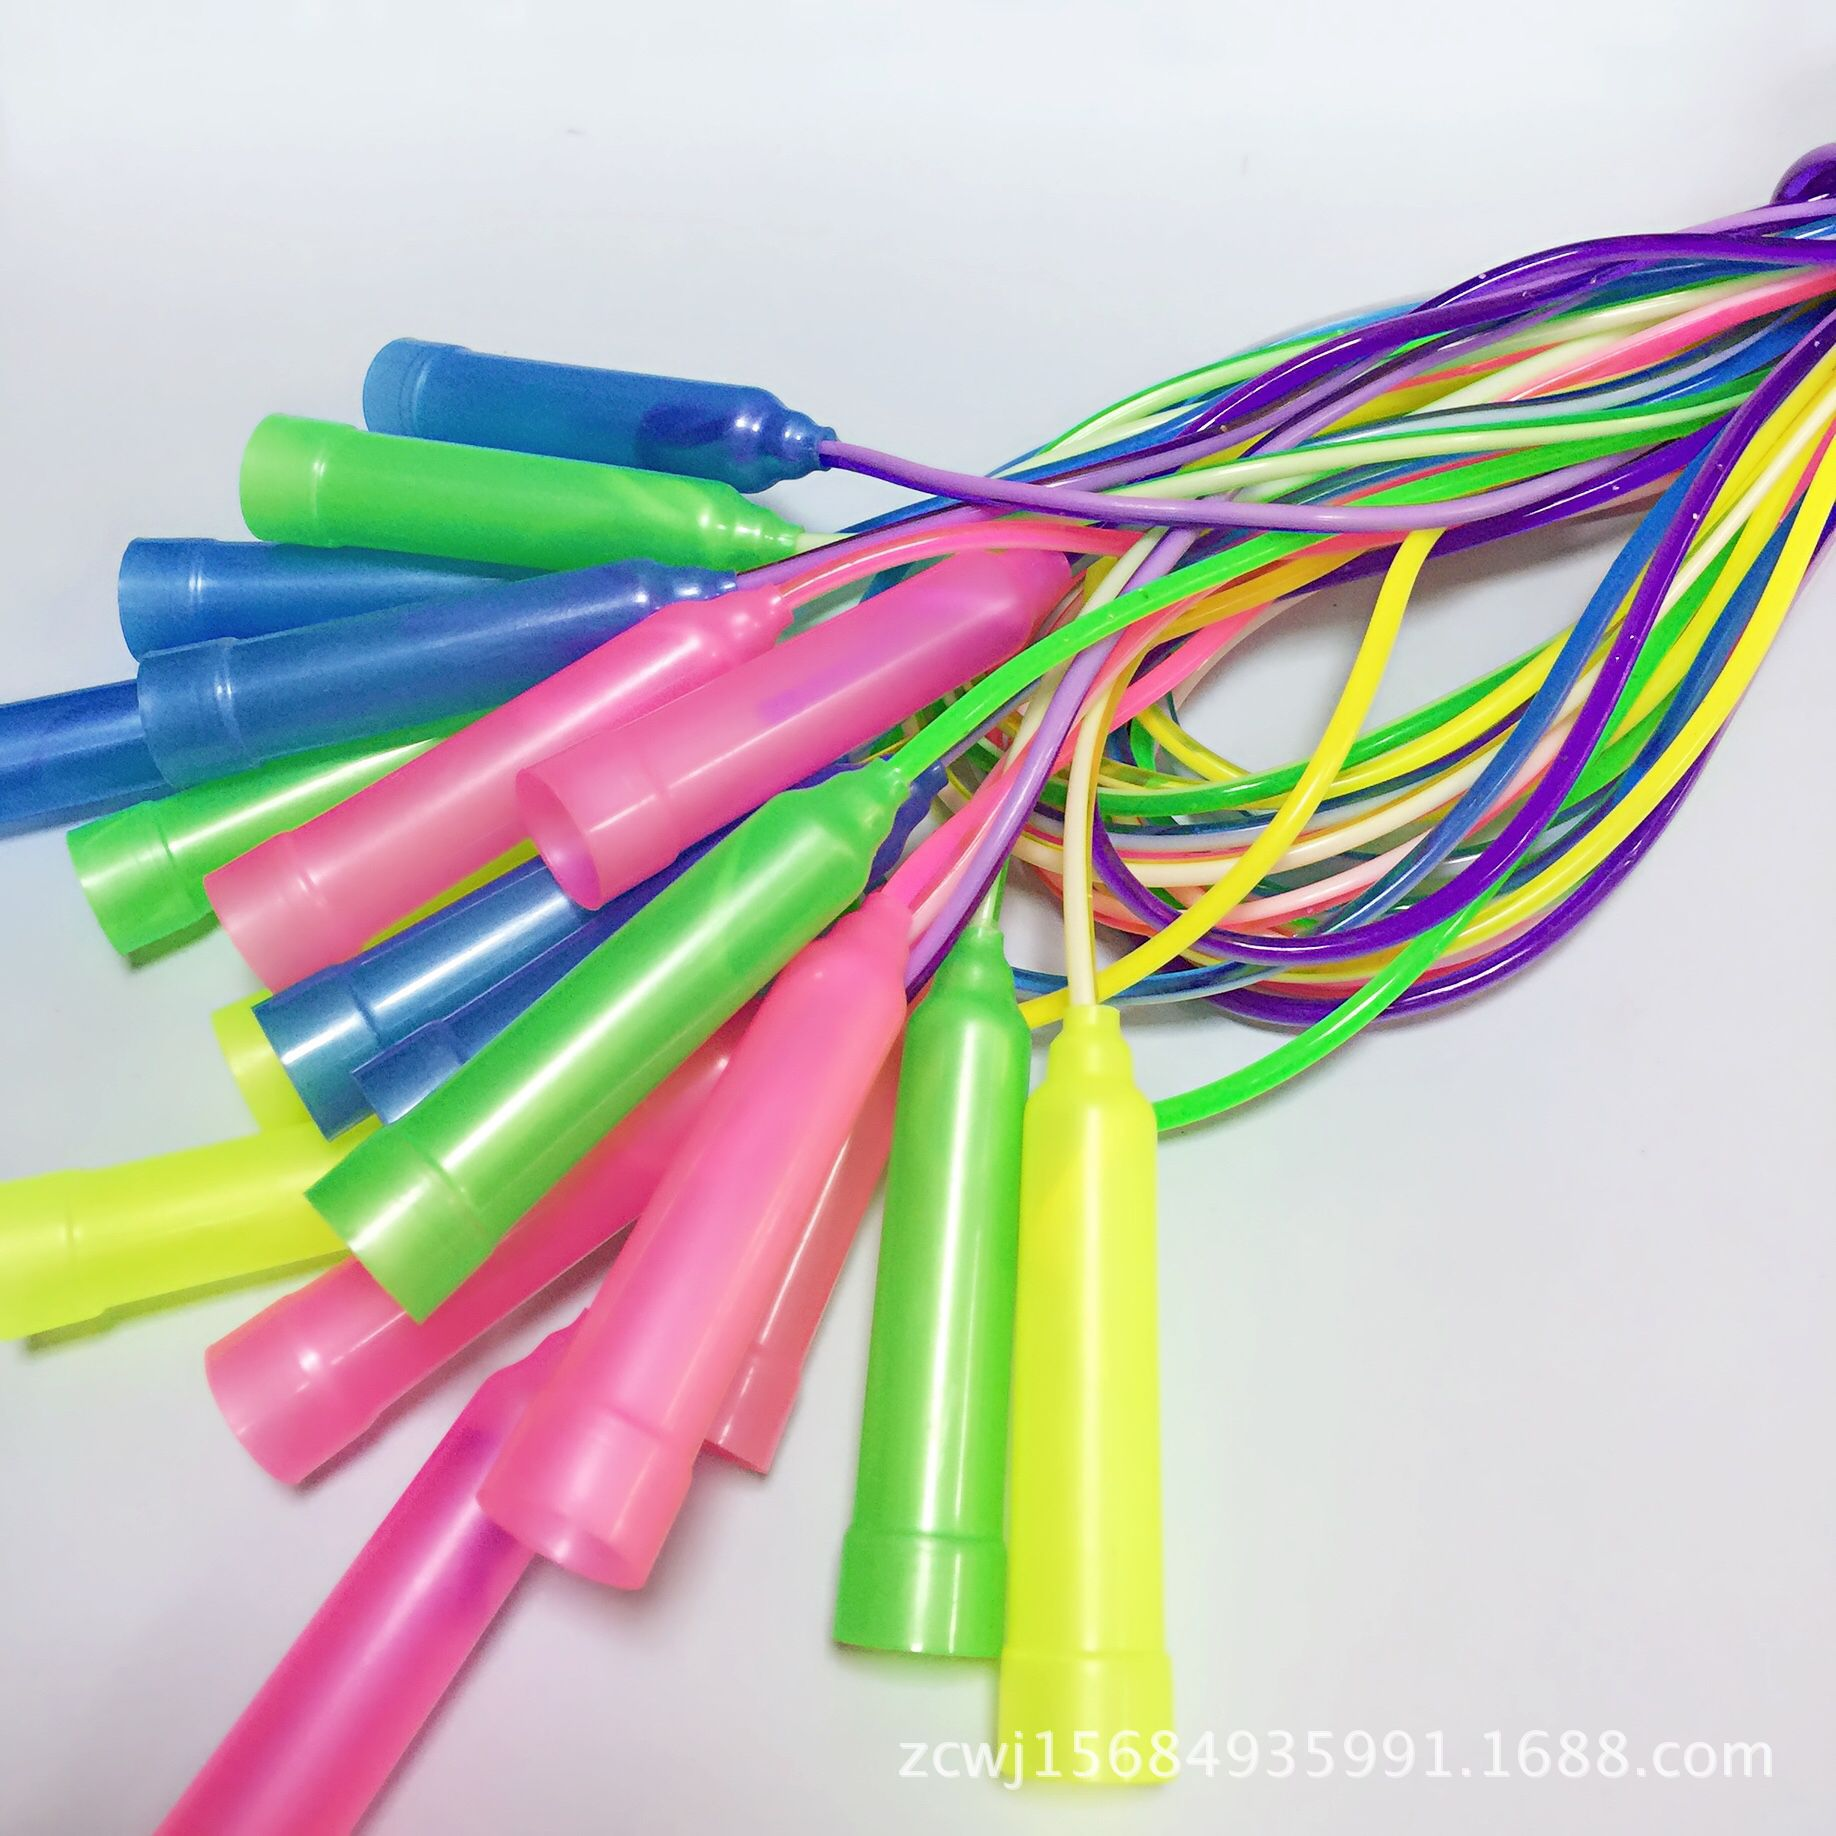 Primary School STUDENT'S Sports The Academic Test For The Junior High School Students Standard Jump Rope Color Plastic Training